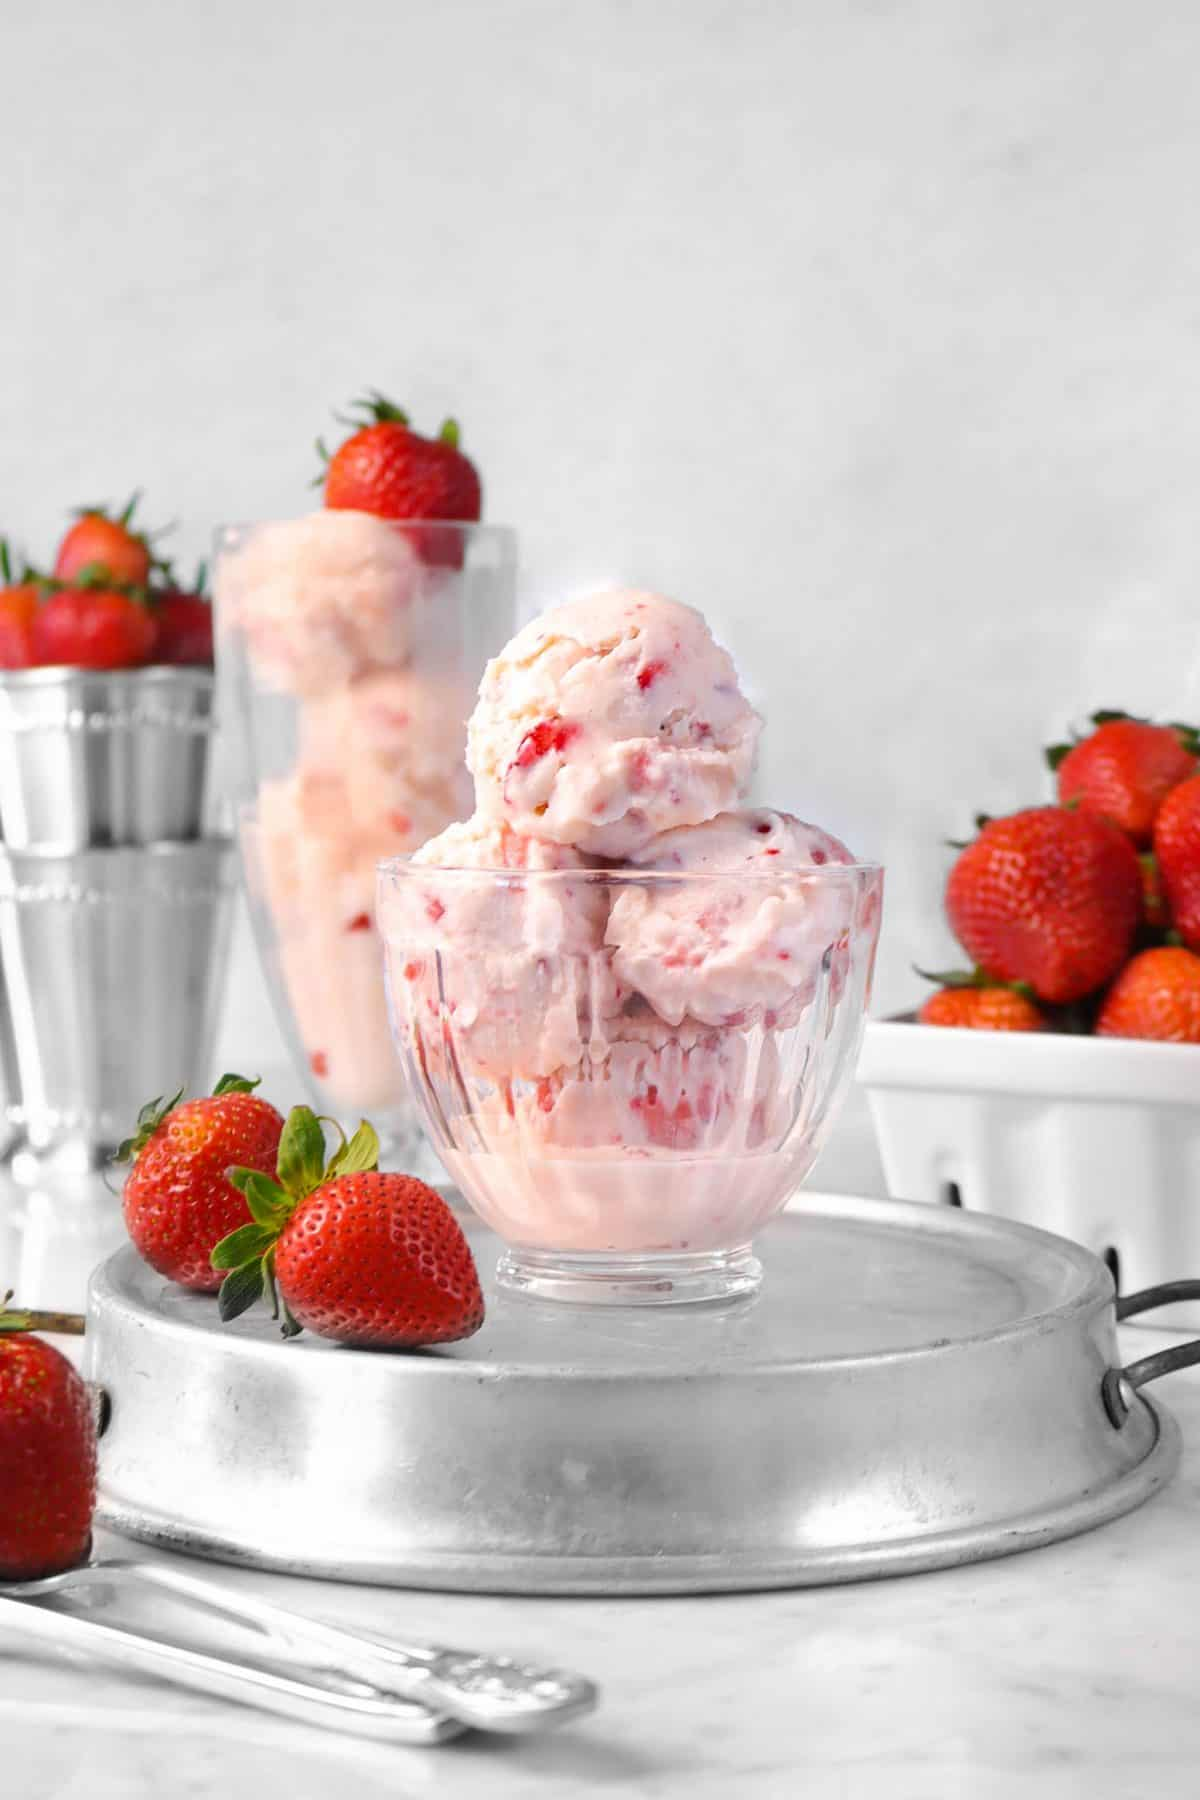 four scoops of strawberry ice cream in a glass bowl on a stainless steel baking pan with fresh strawberries and a milk shake glass with four scoops of strawberry ice cream in the background